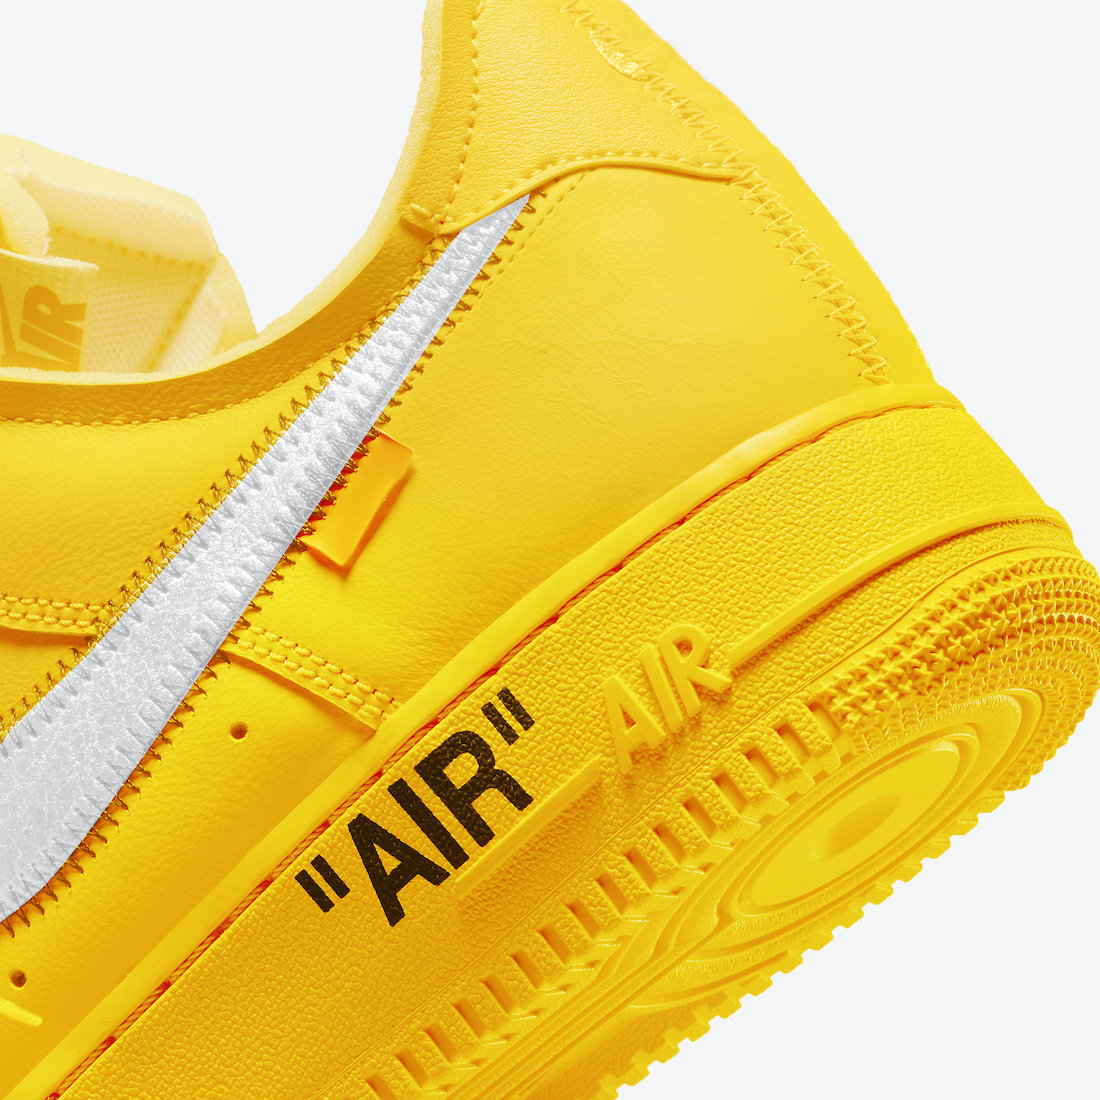 Off-White Nike Air Force 1 Low University Gold DD1876-700 Release Date